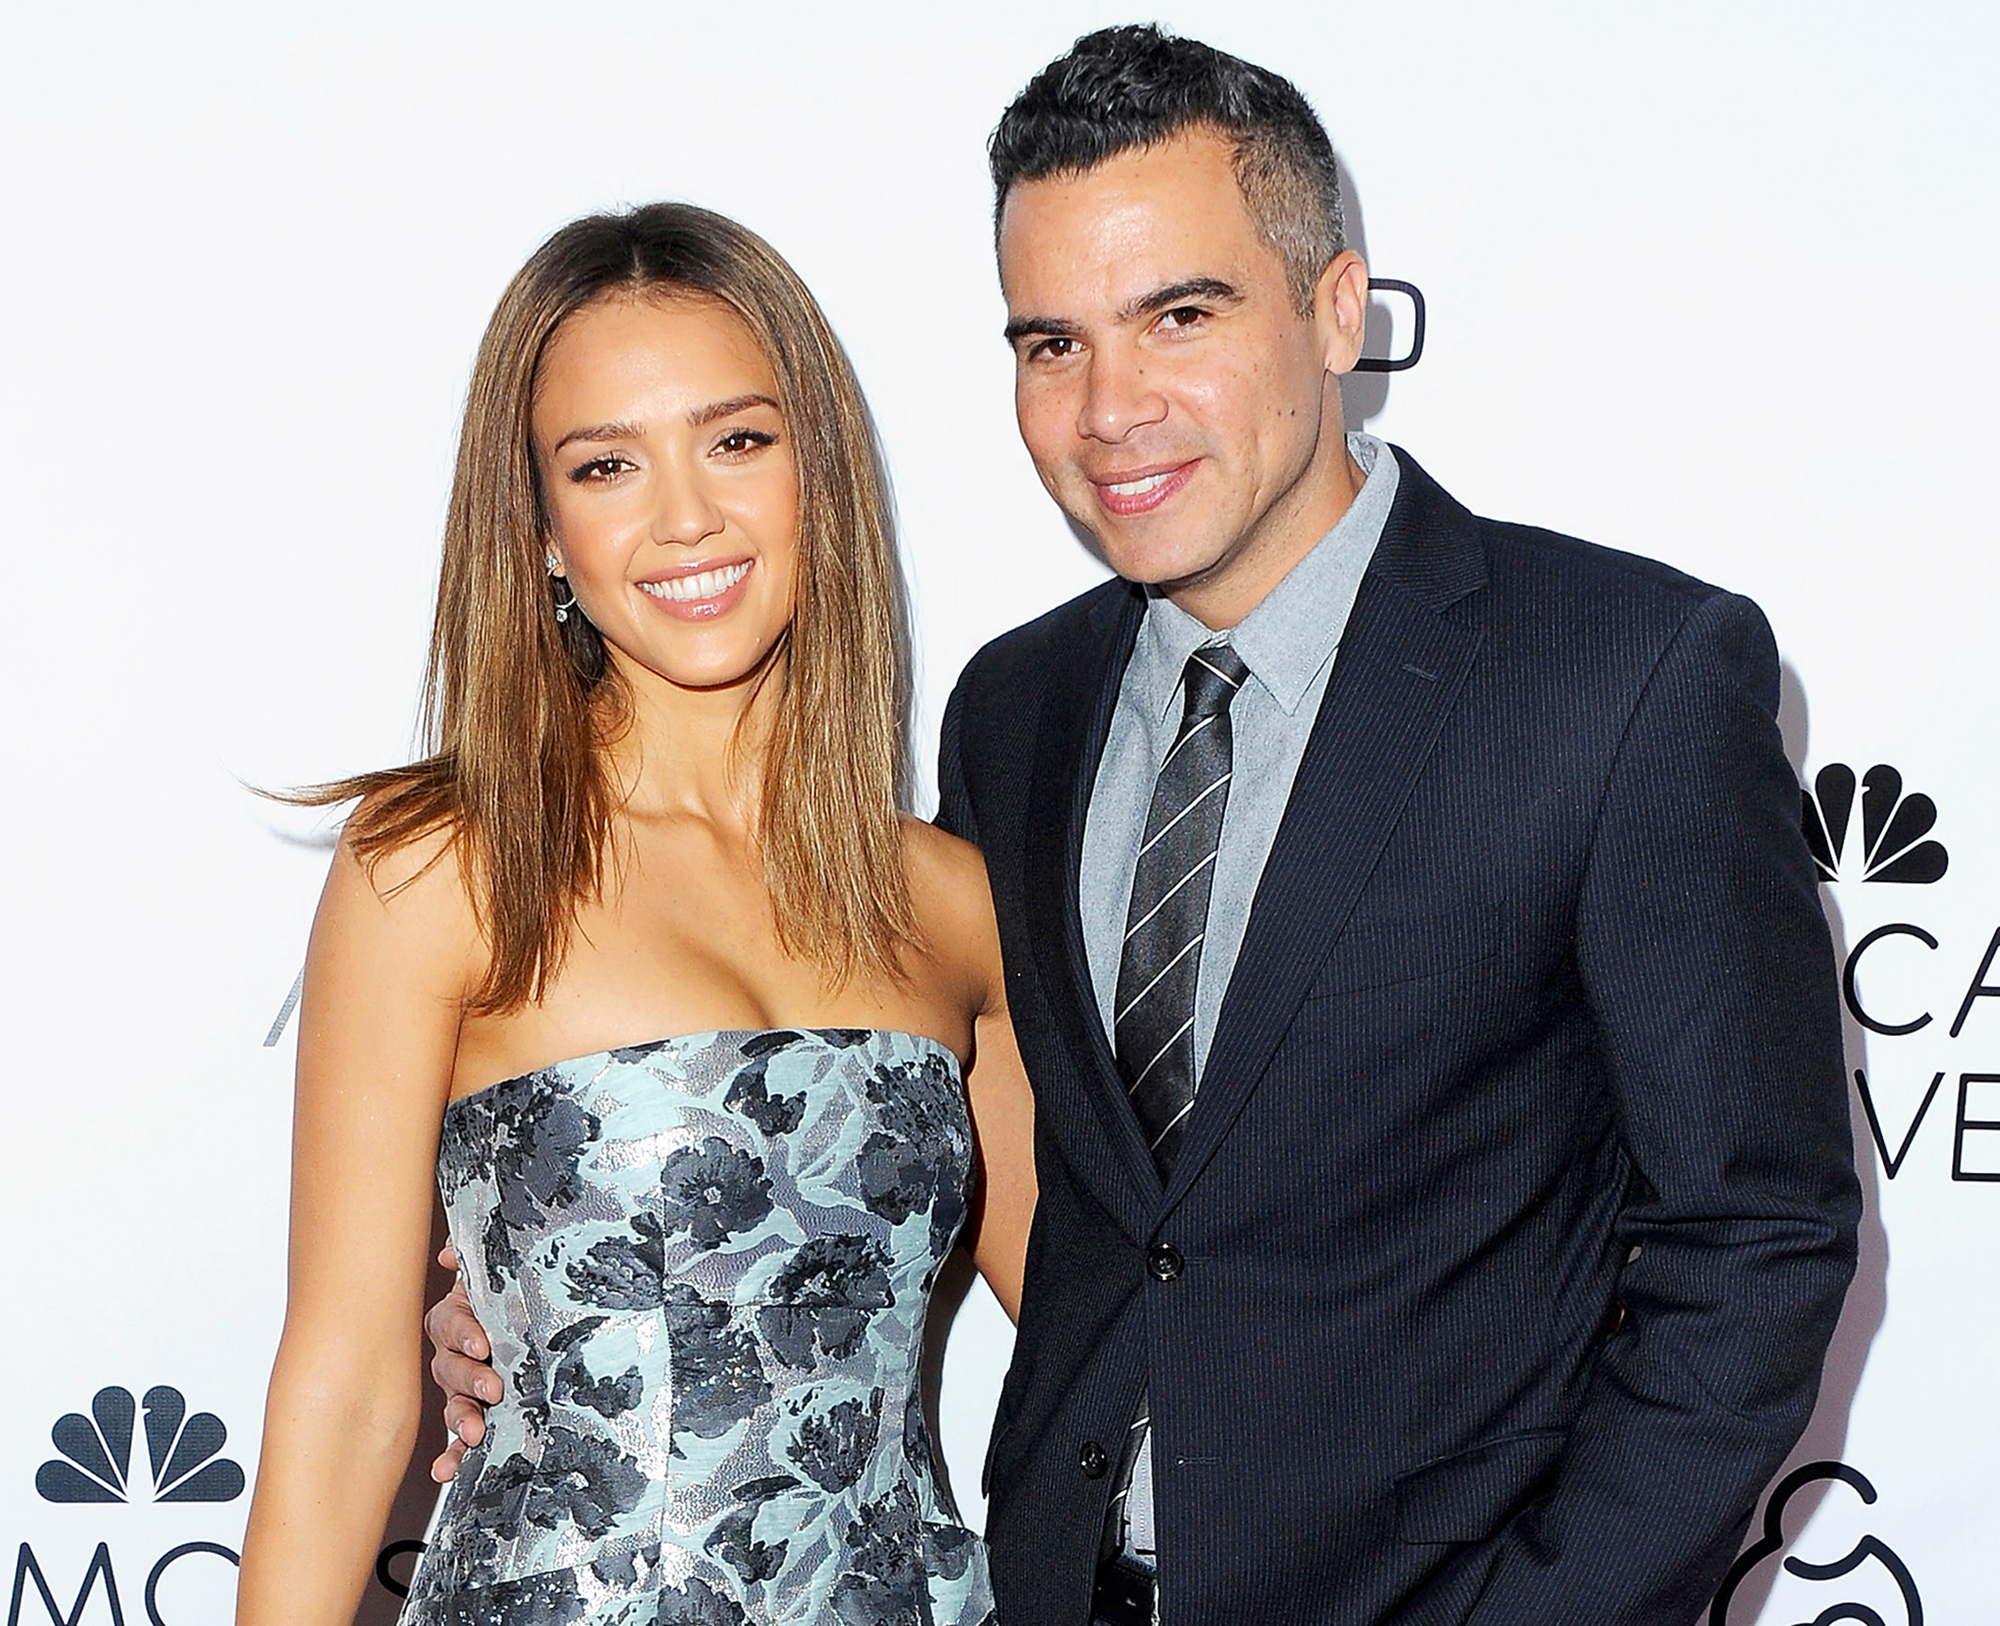 Jessica Alba welcomes new baby